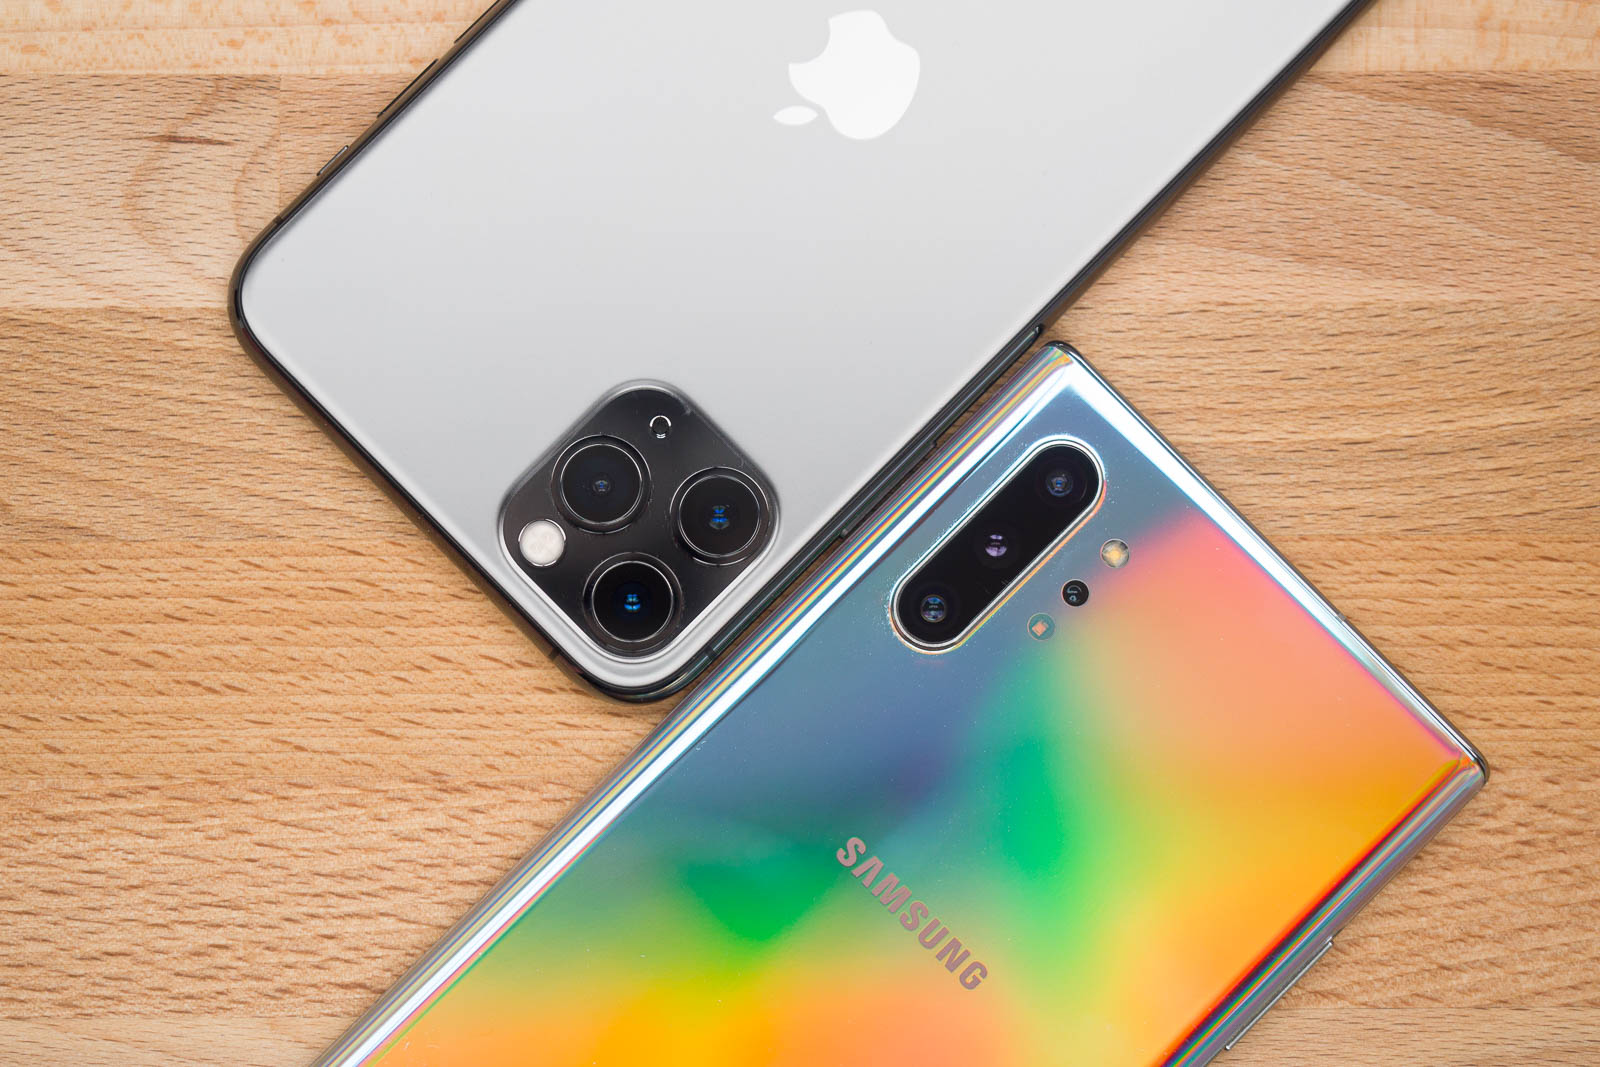 These were the best selling smartphones in 2019 by region